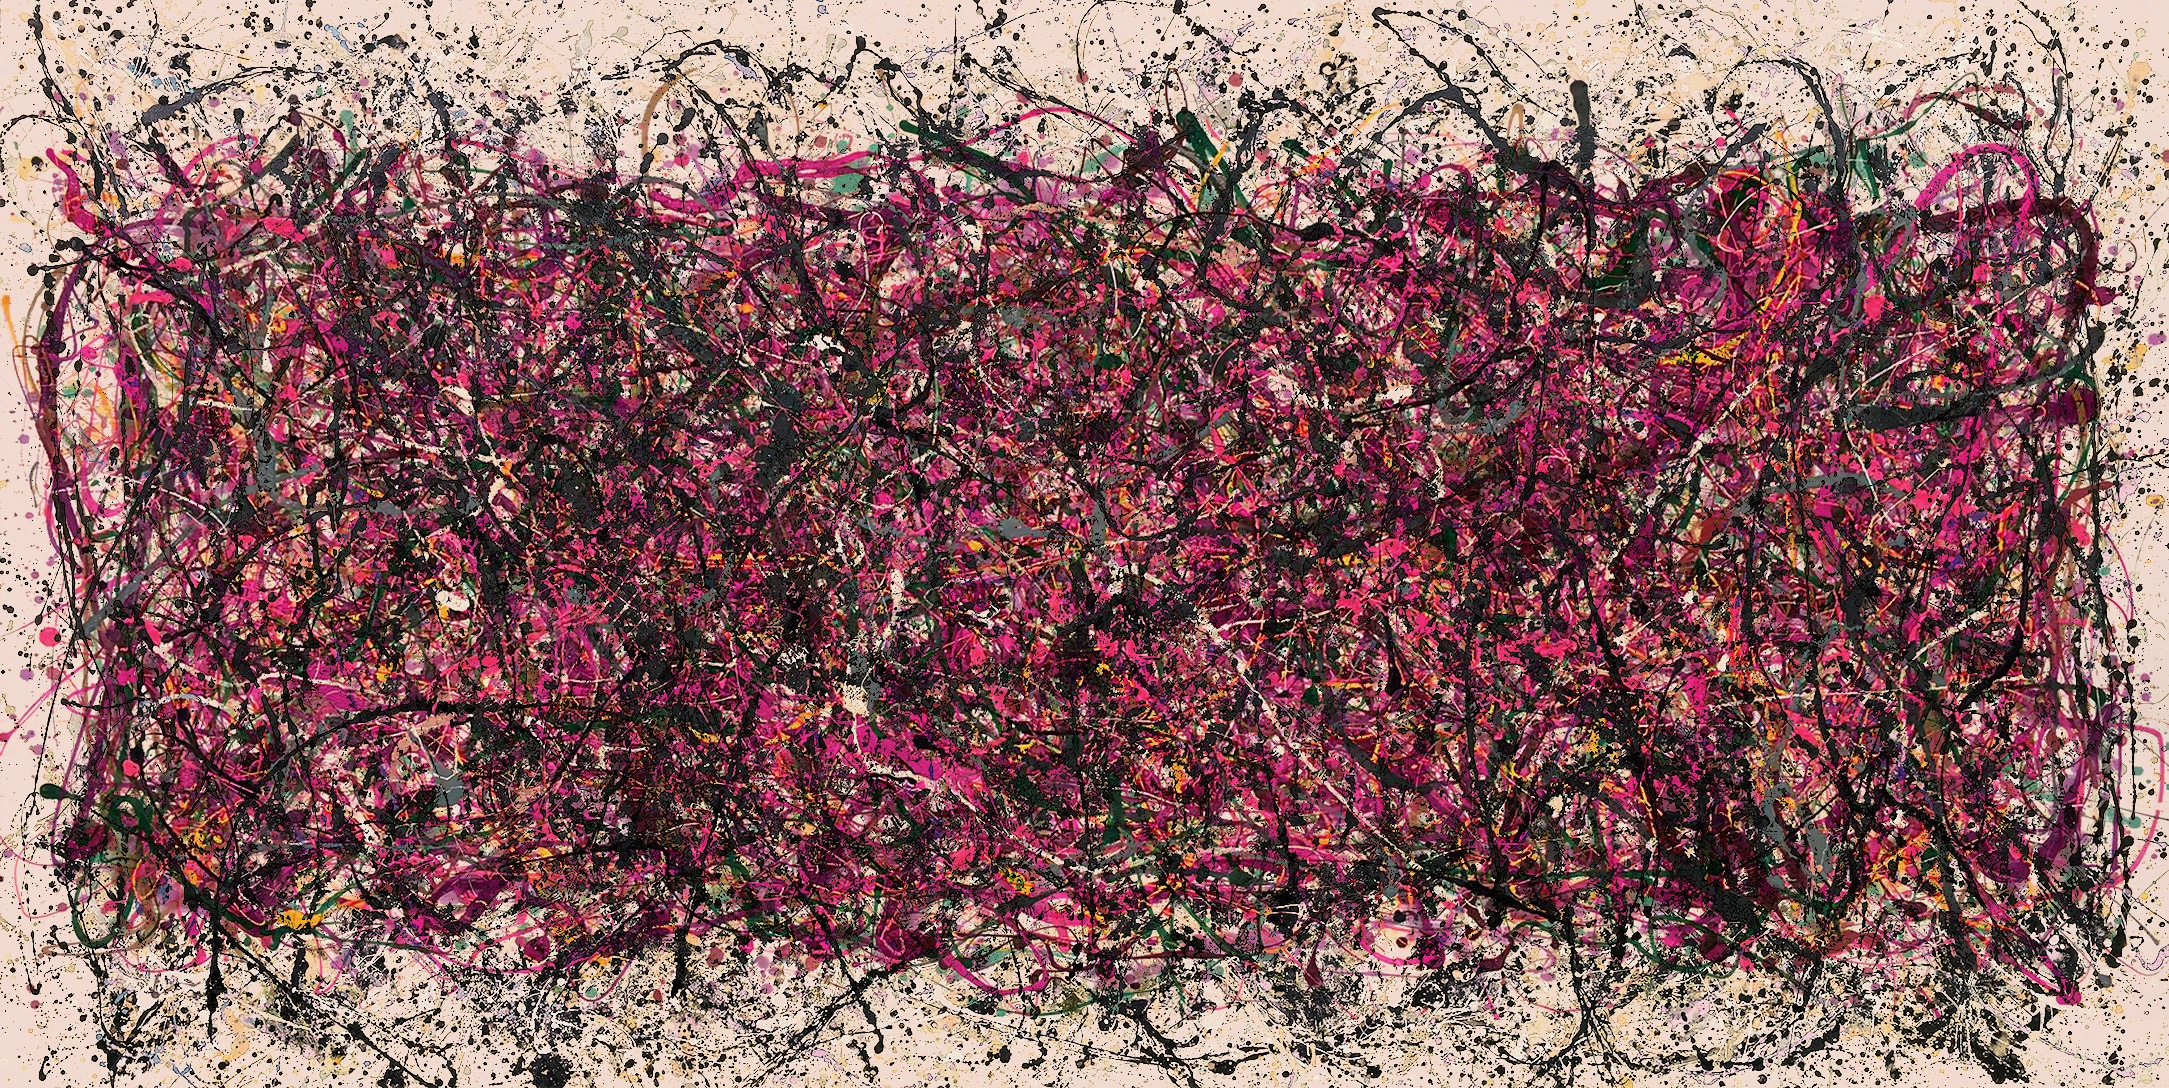 a vivid drip painting of pinks, magentas, and yellows with splashes of blacks